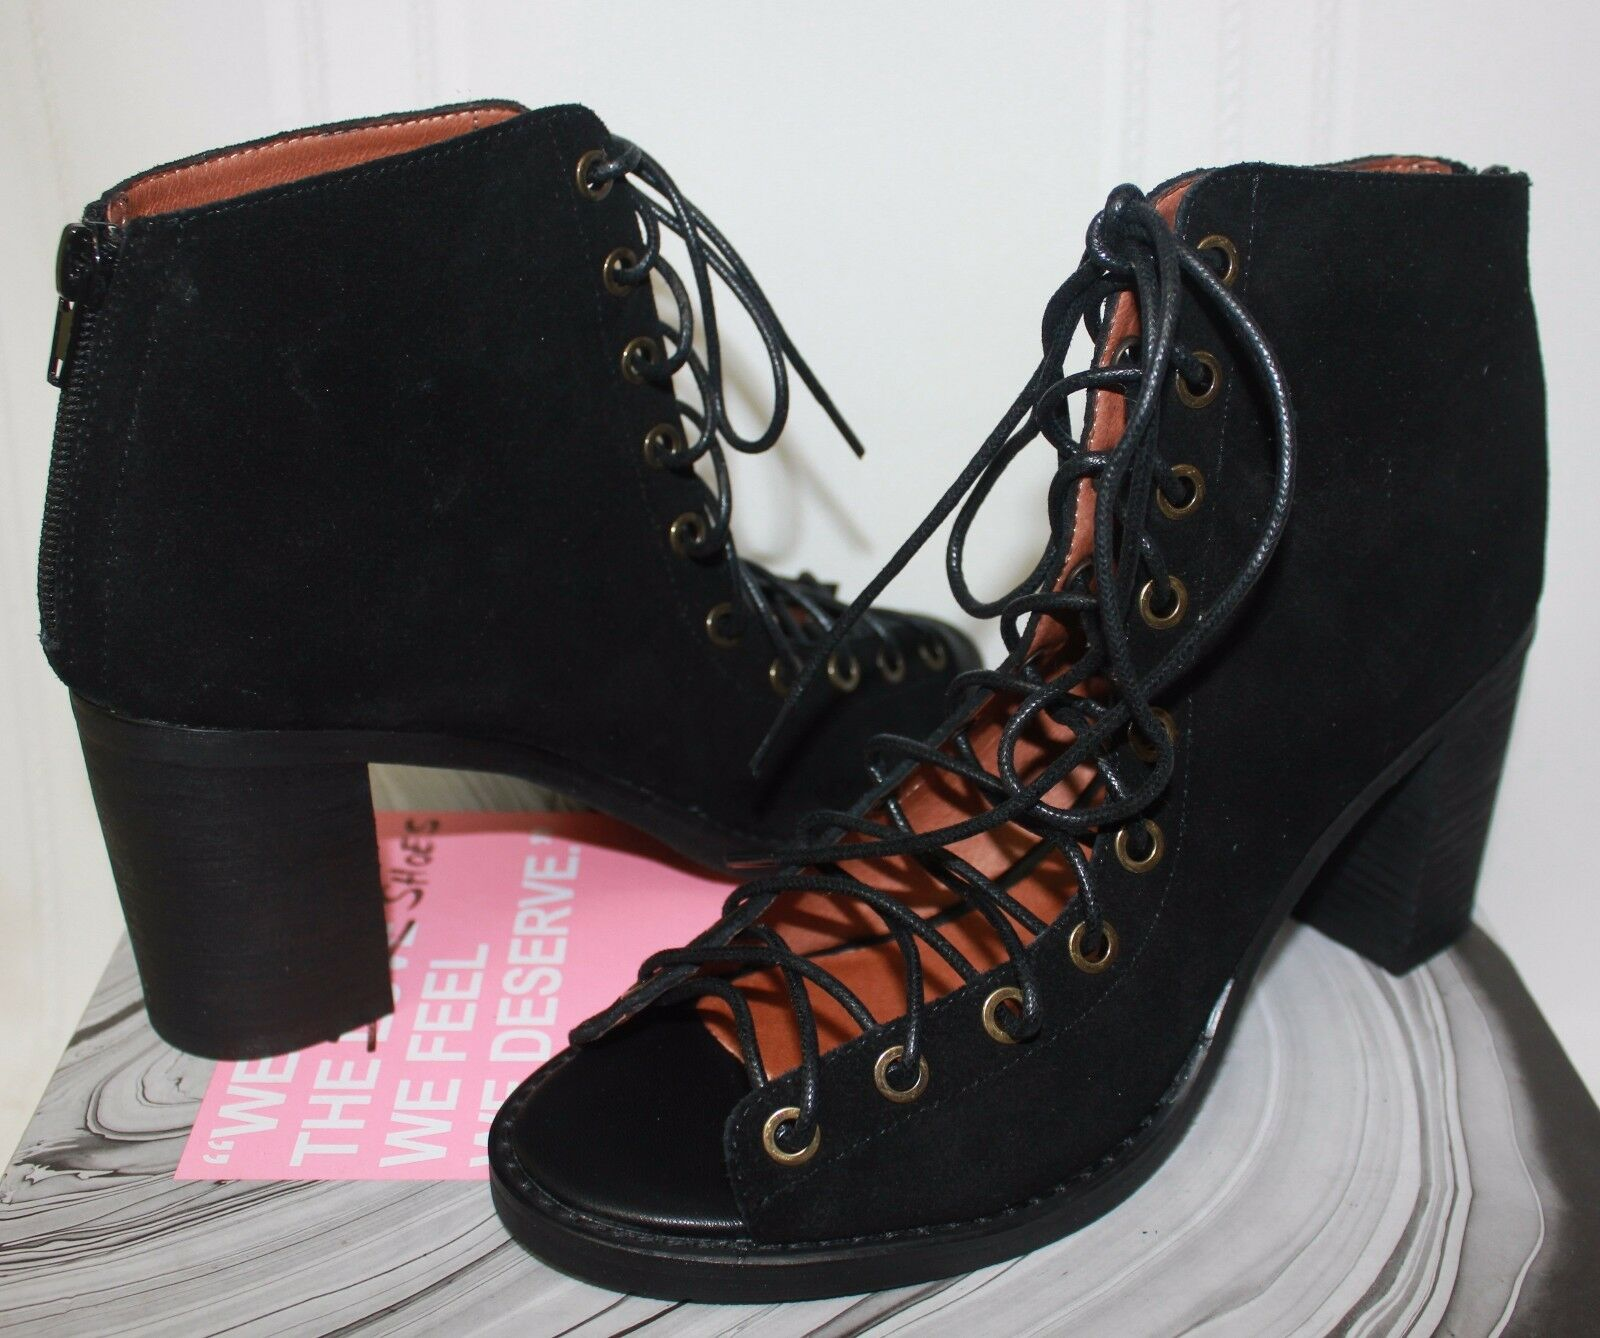 Jeffrey Campbell Cors Lace Up shoes Black Suede New With Box